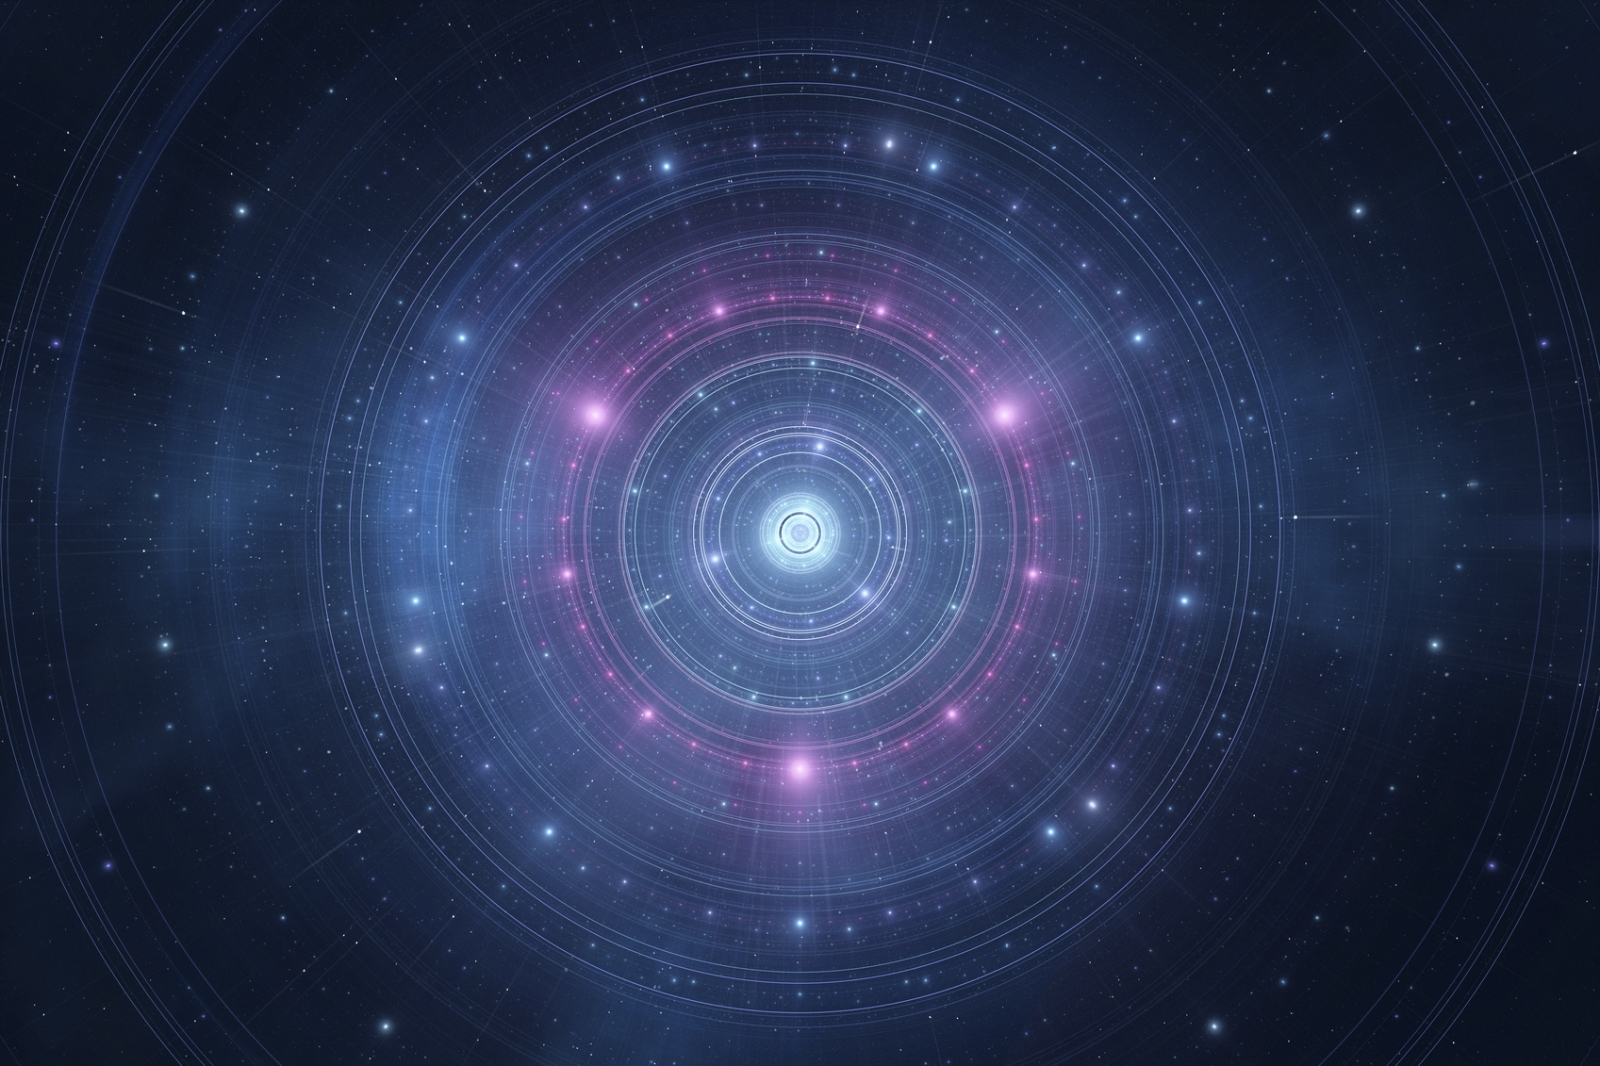 Abstract astrological time wheel in space